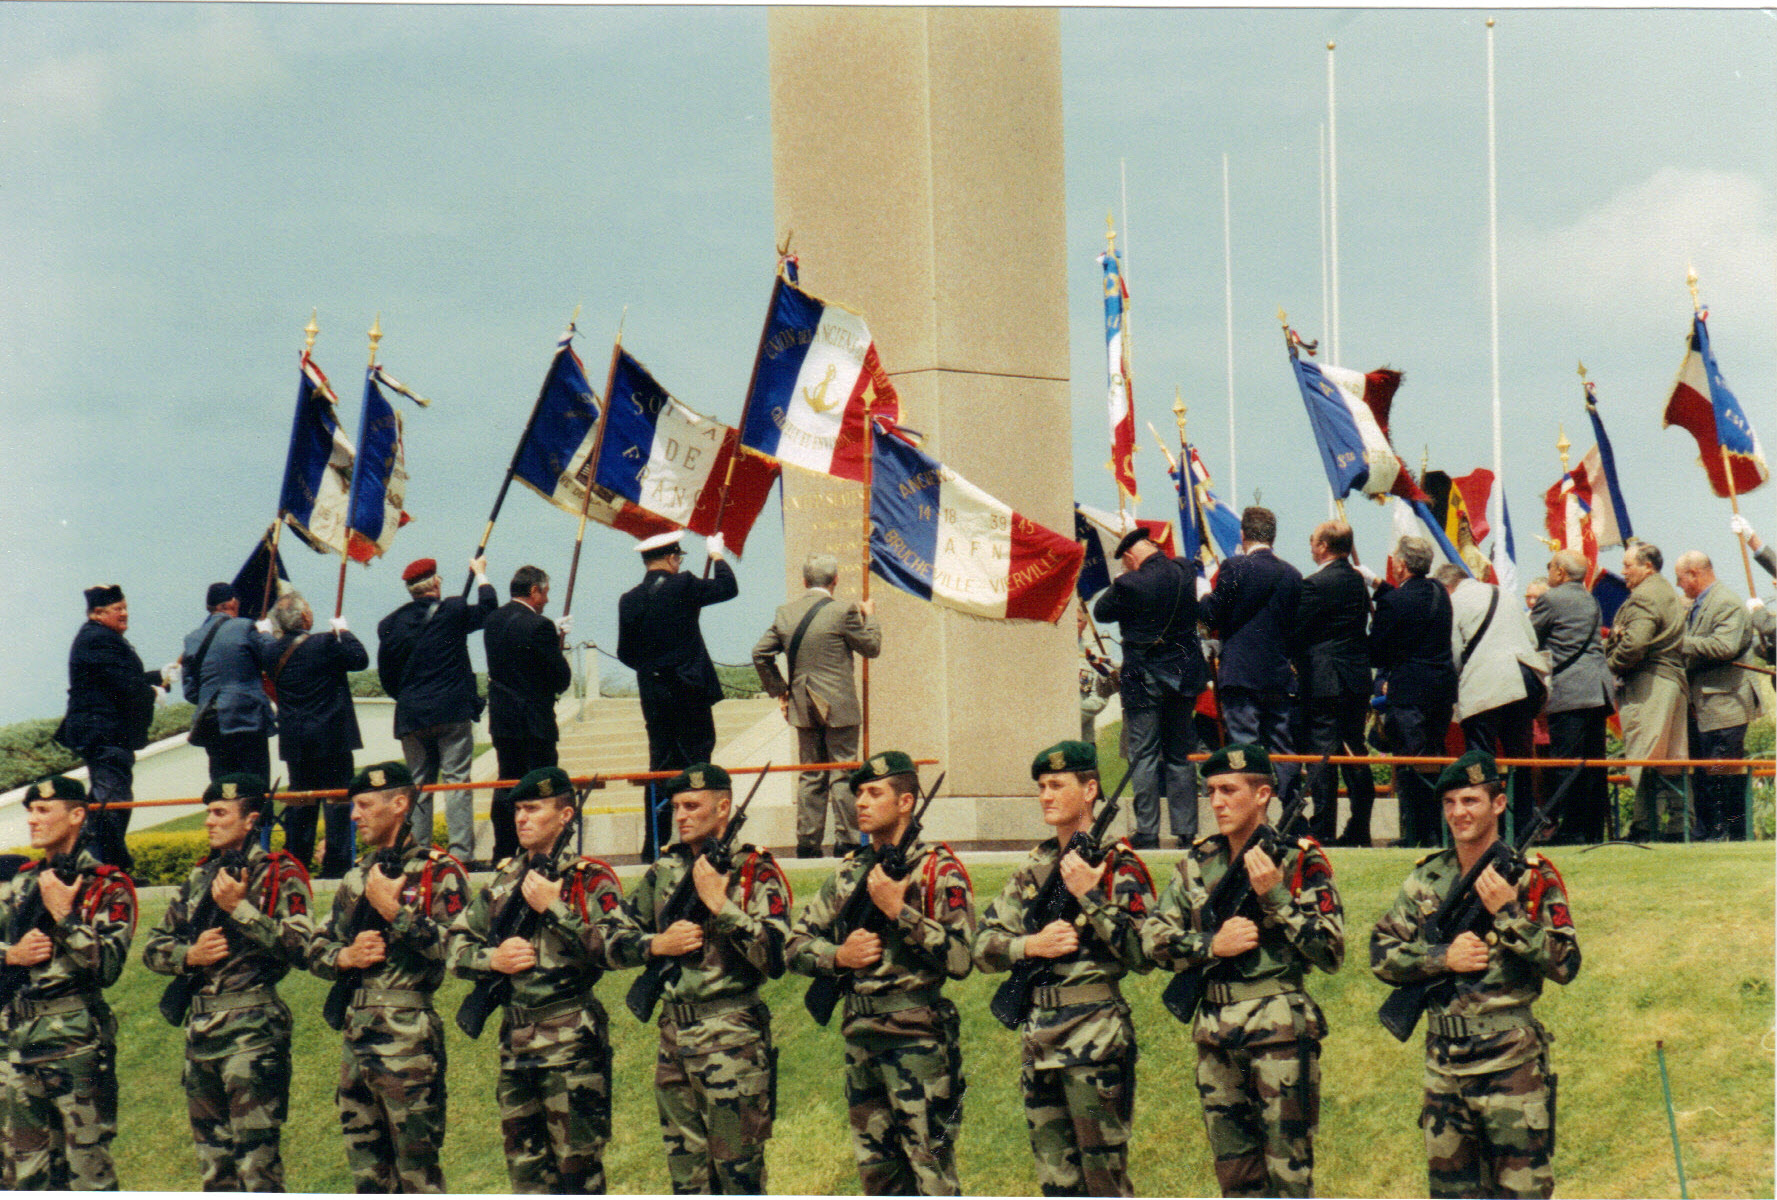 Band of Brothers ceremony honor guard